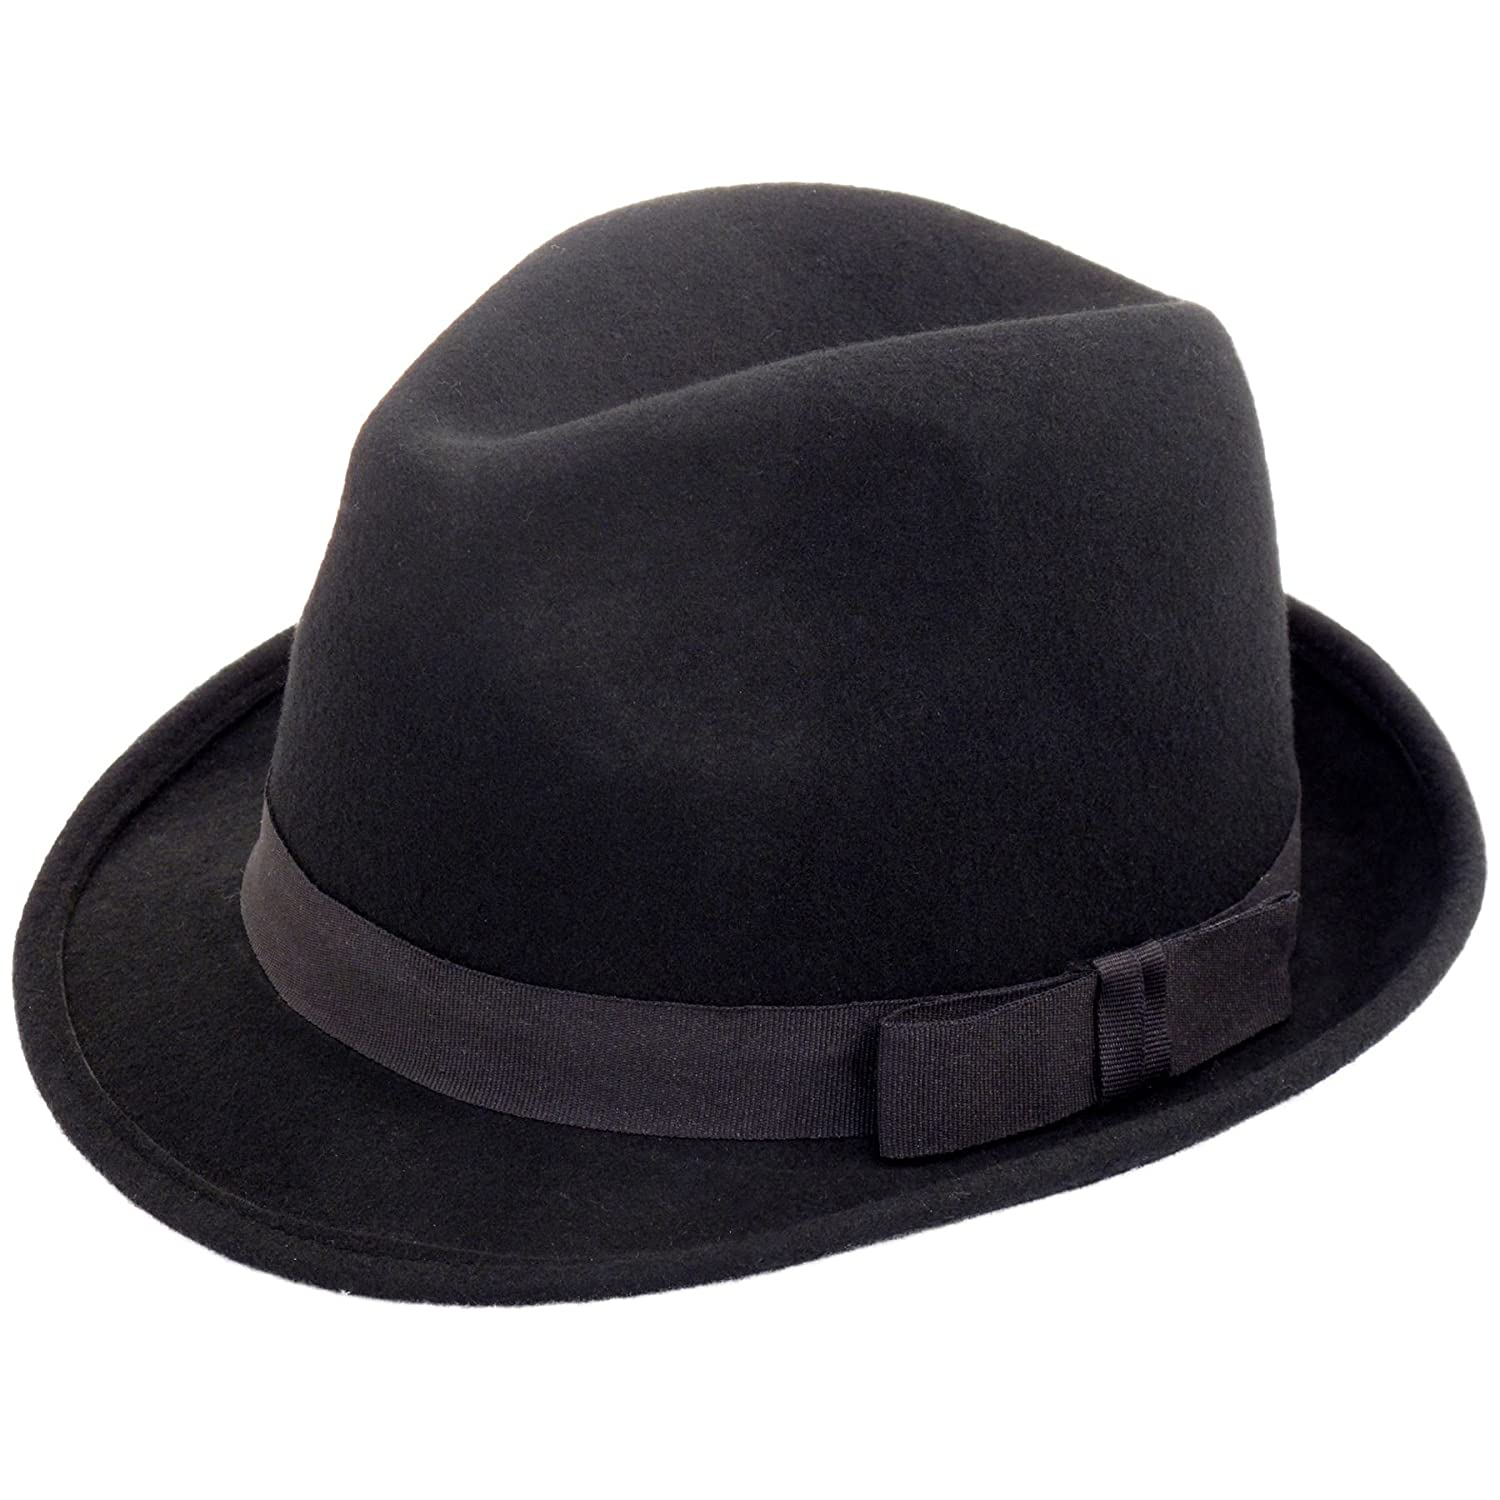 Classic black wool felt trilby hat with taffeta band 57cm)